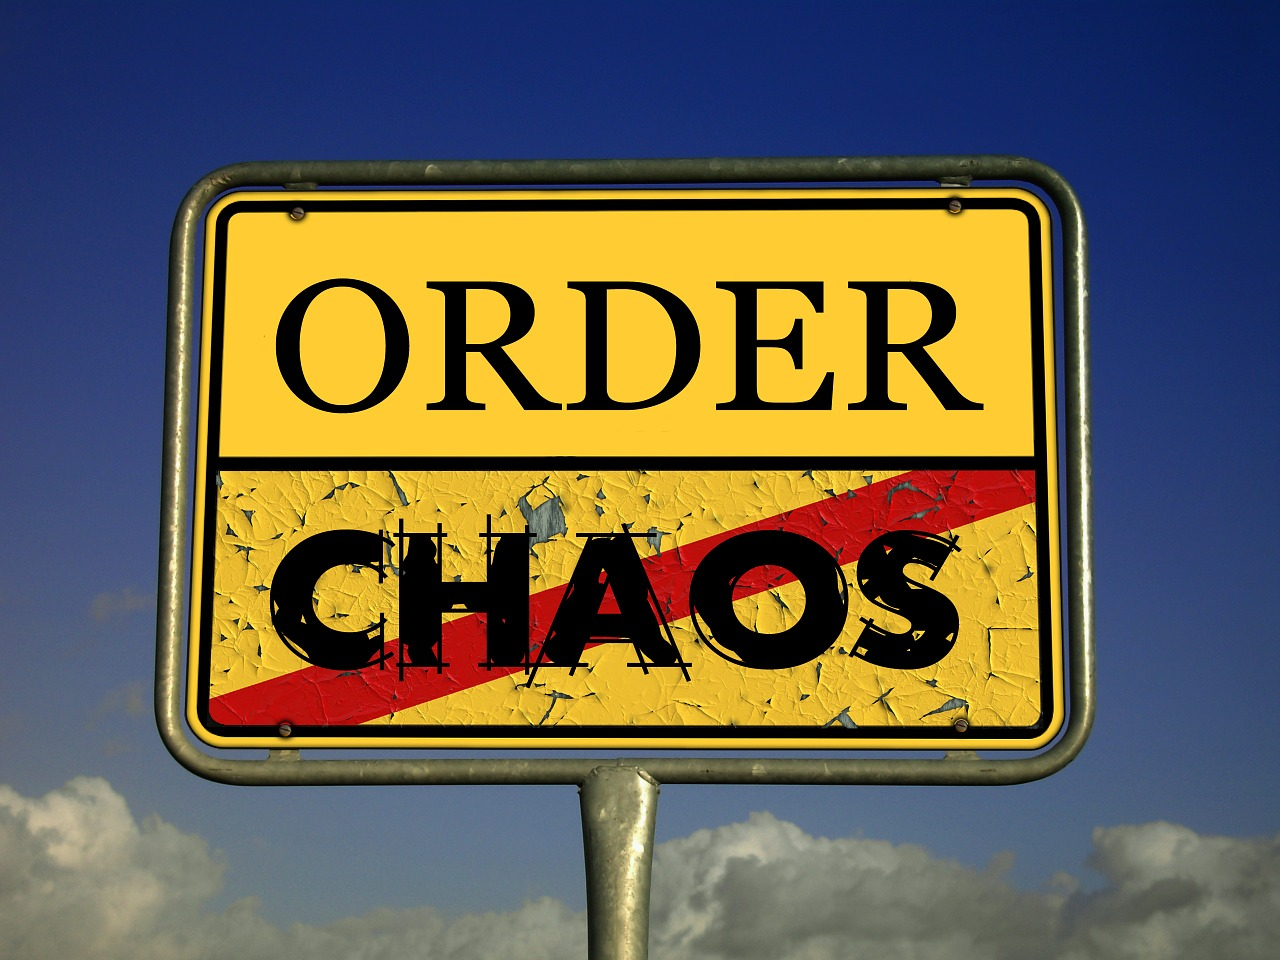 Strive for order in your life and get away from chaos